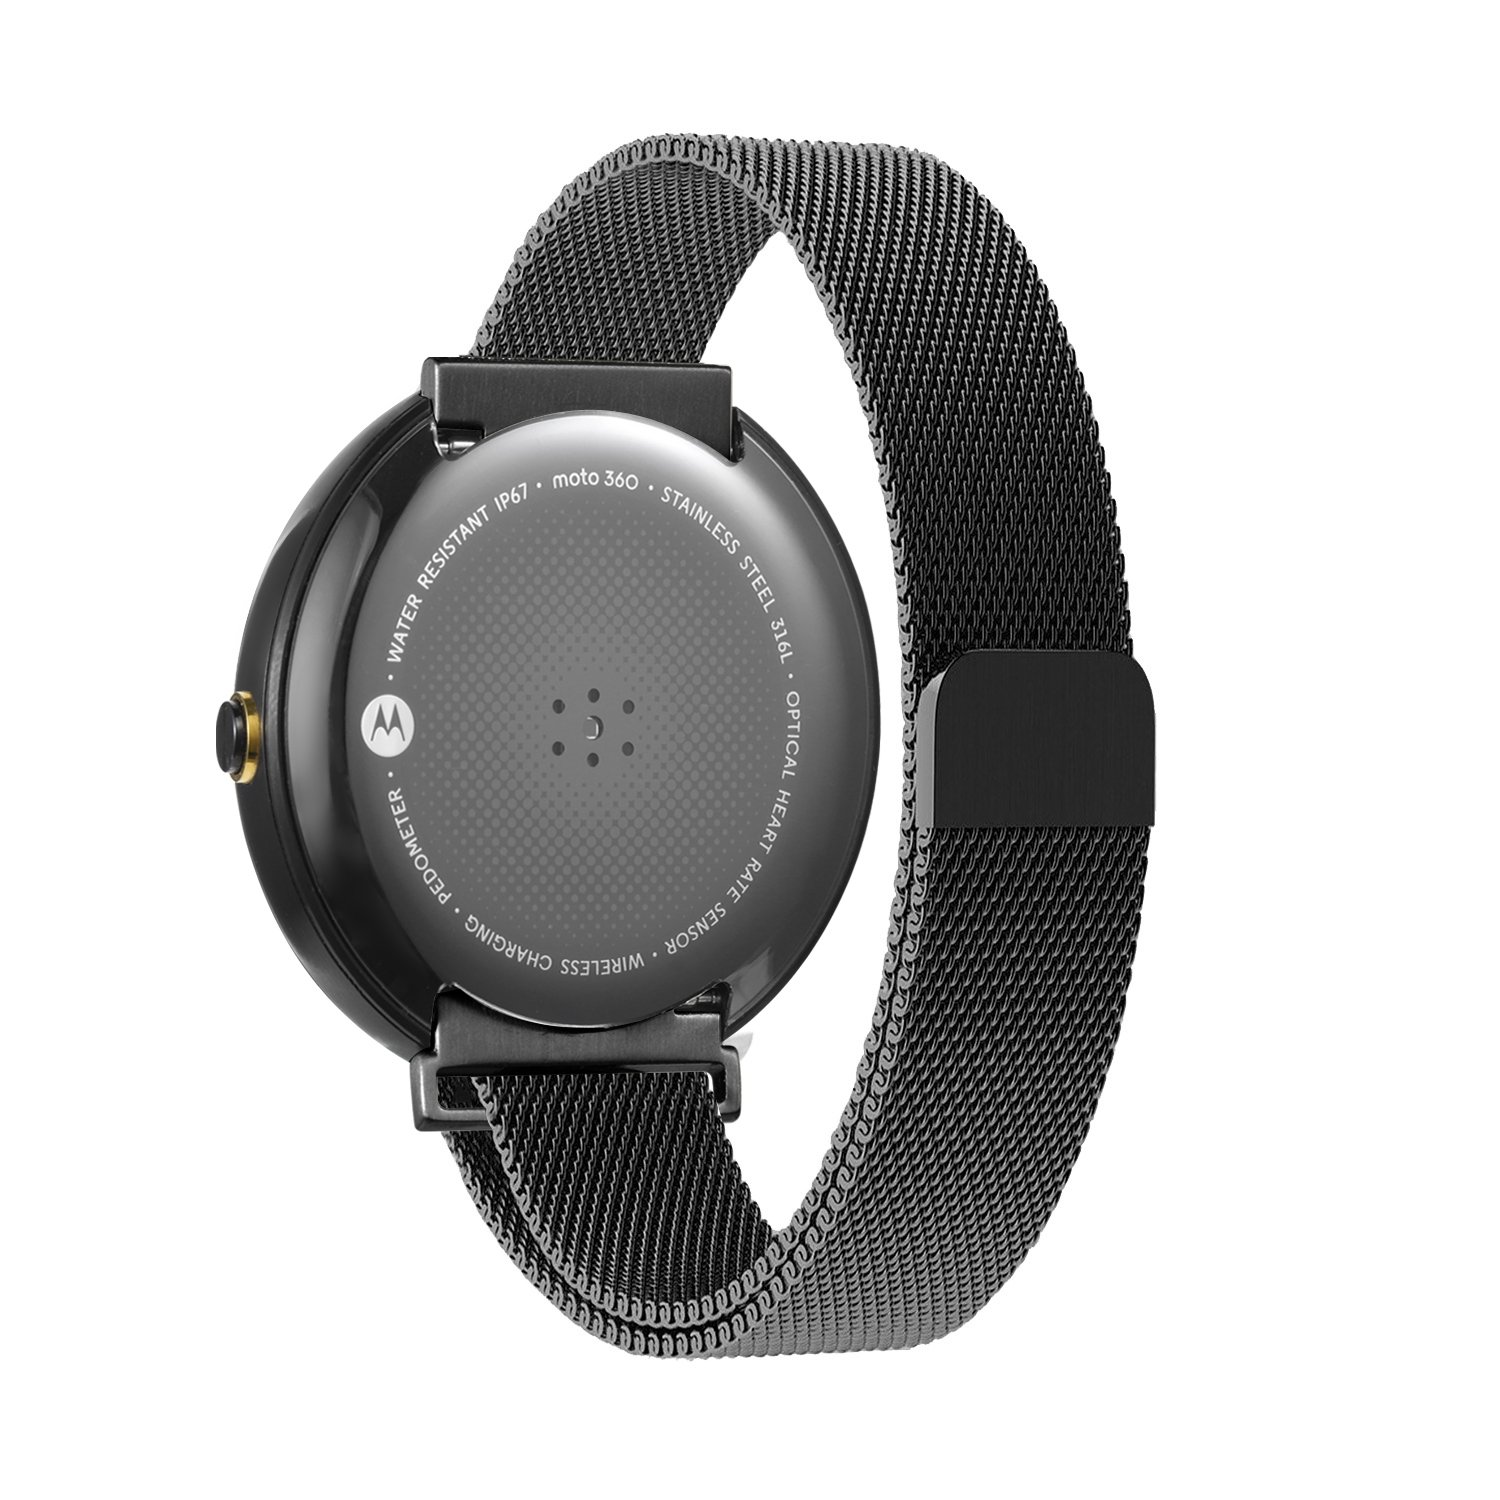 Oitom Watch bands Stailess Steel Milanese Magnetic Loop for Motorola Moto 360 1st 2014 Smartwatch (Black)